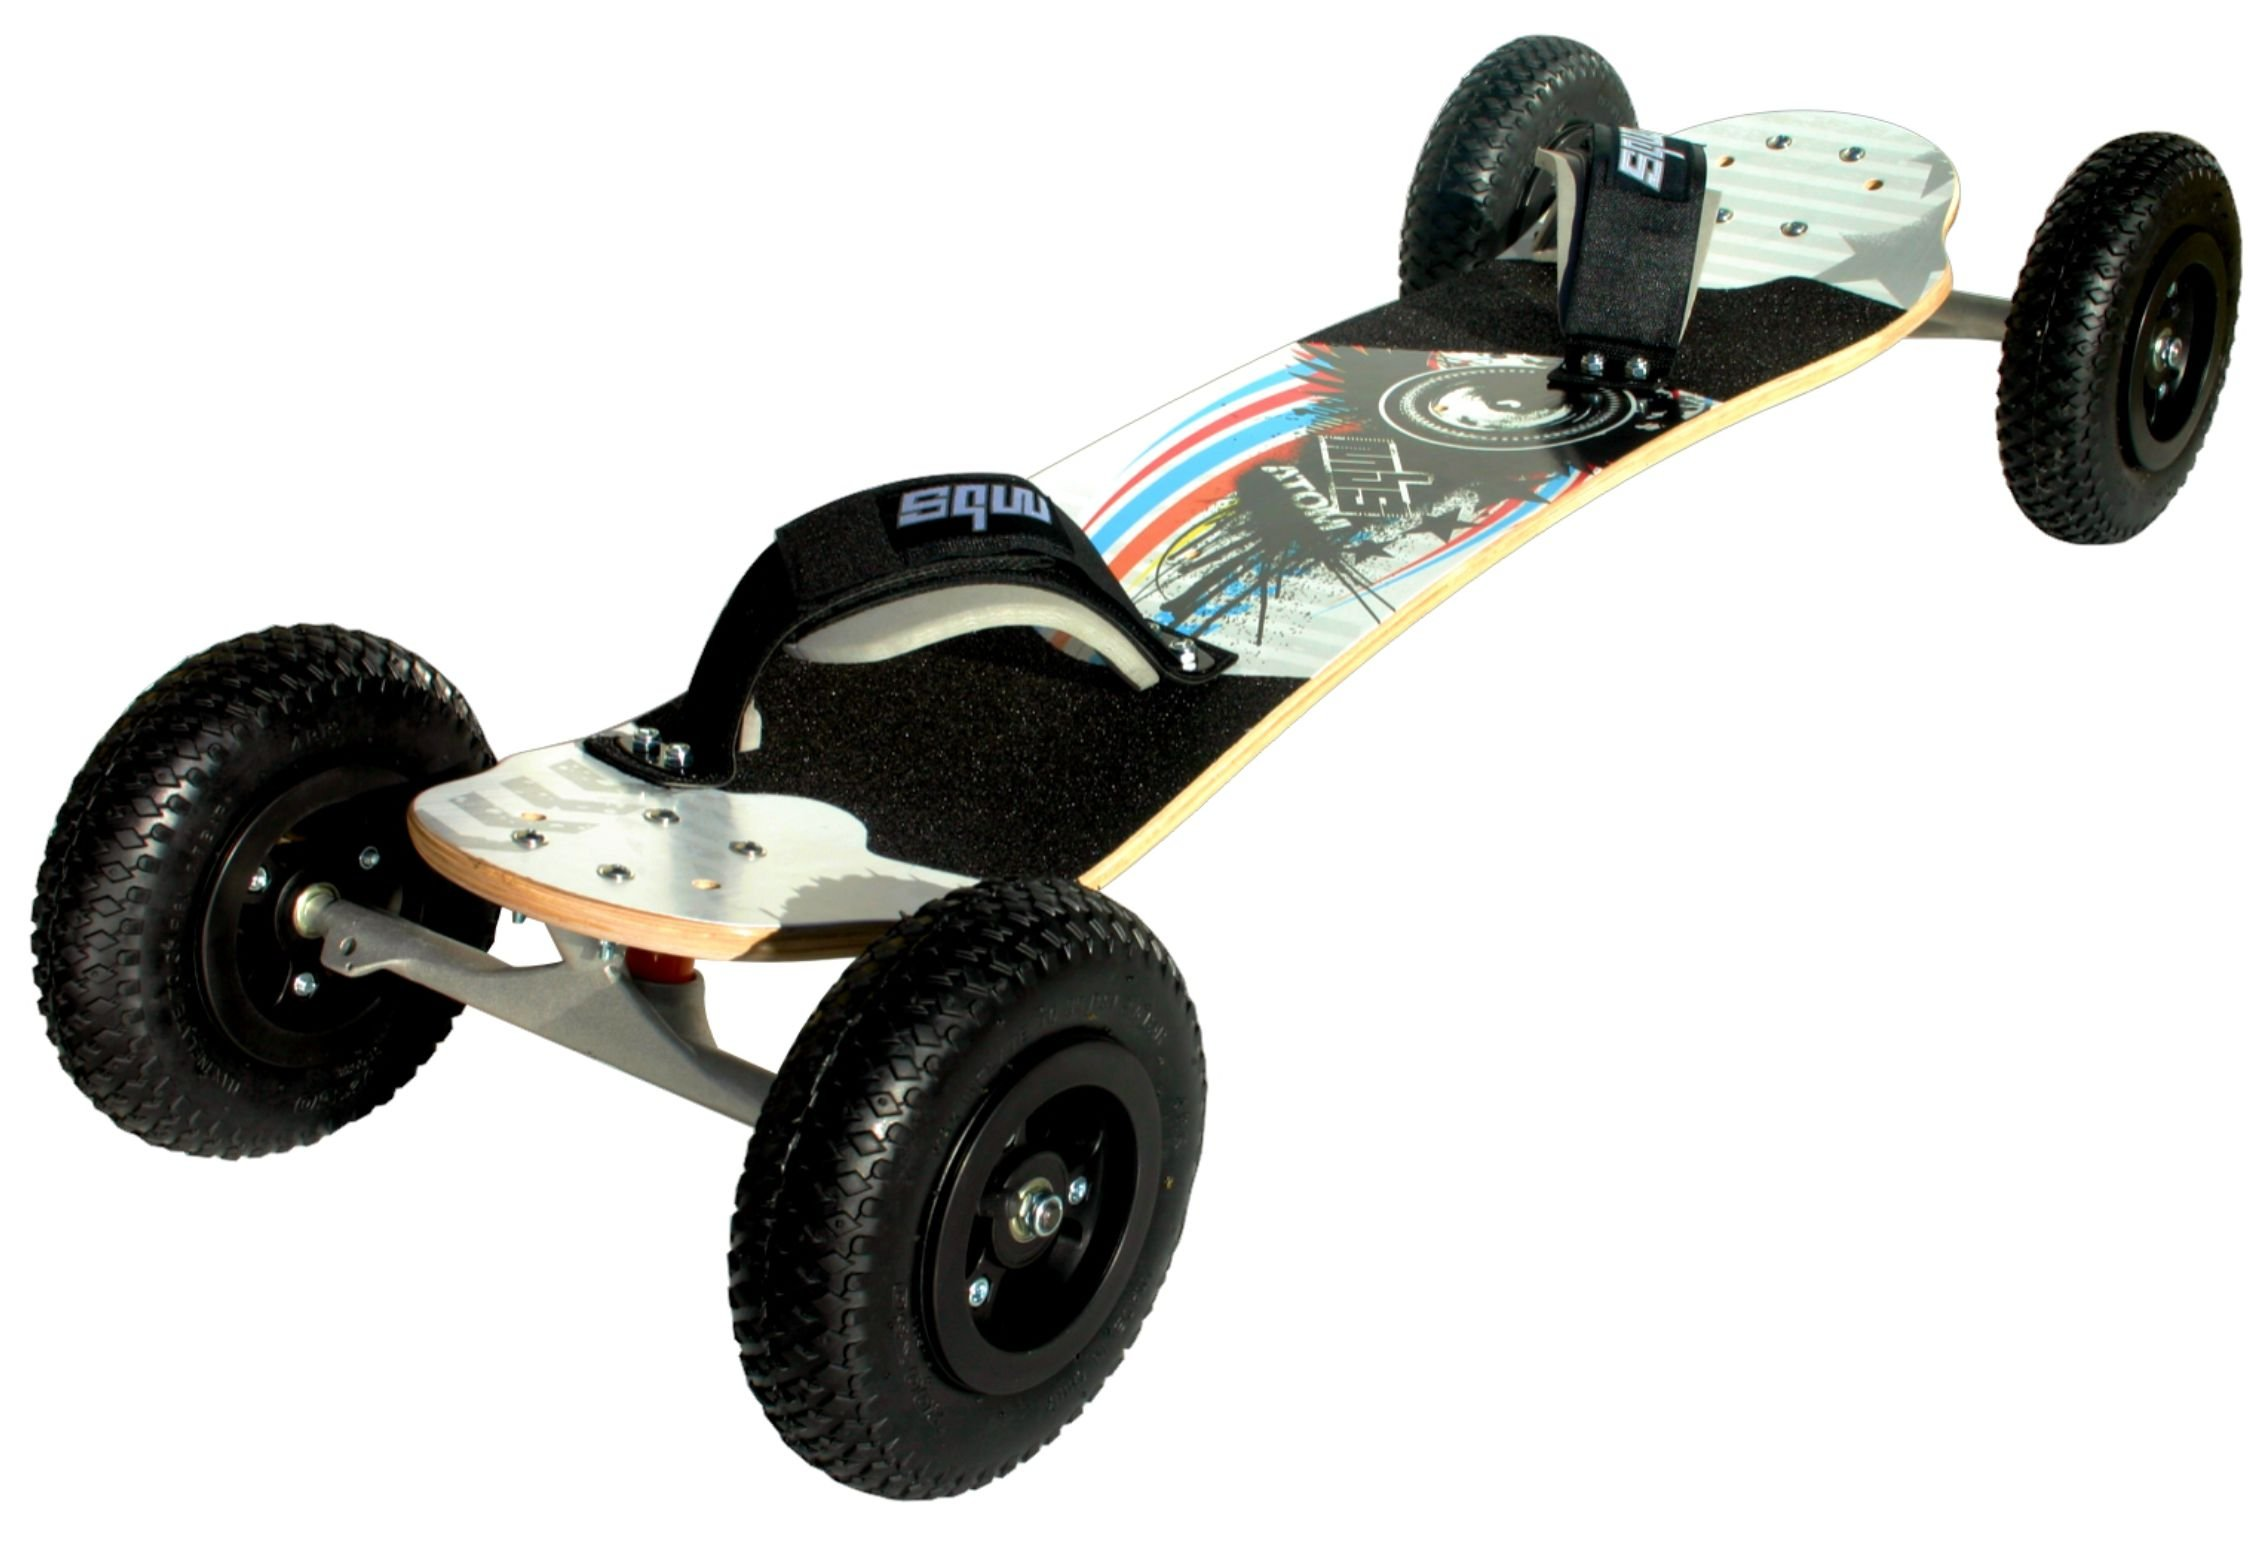 Atom Longboards 91115 90 MountainBoard